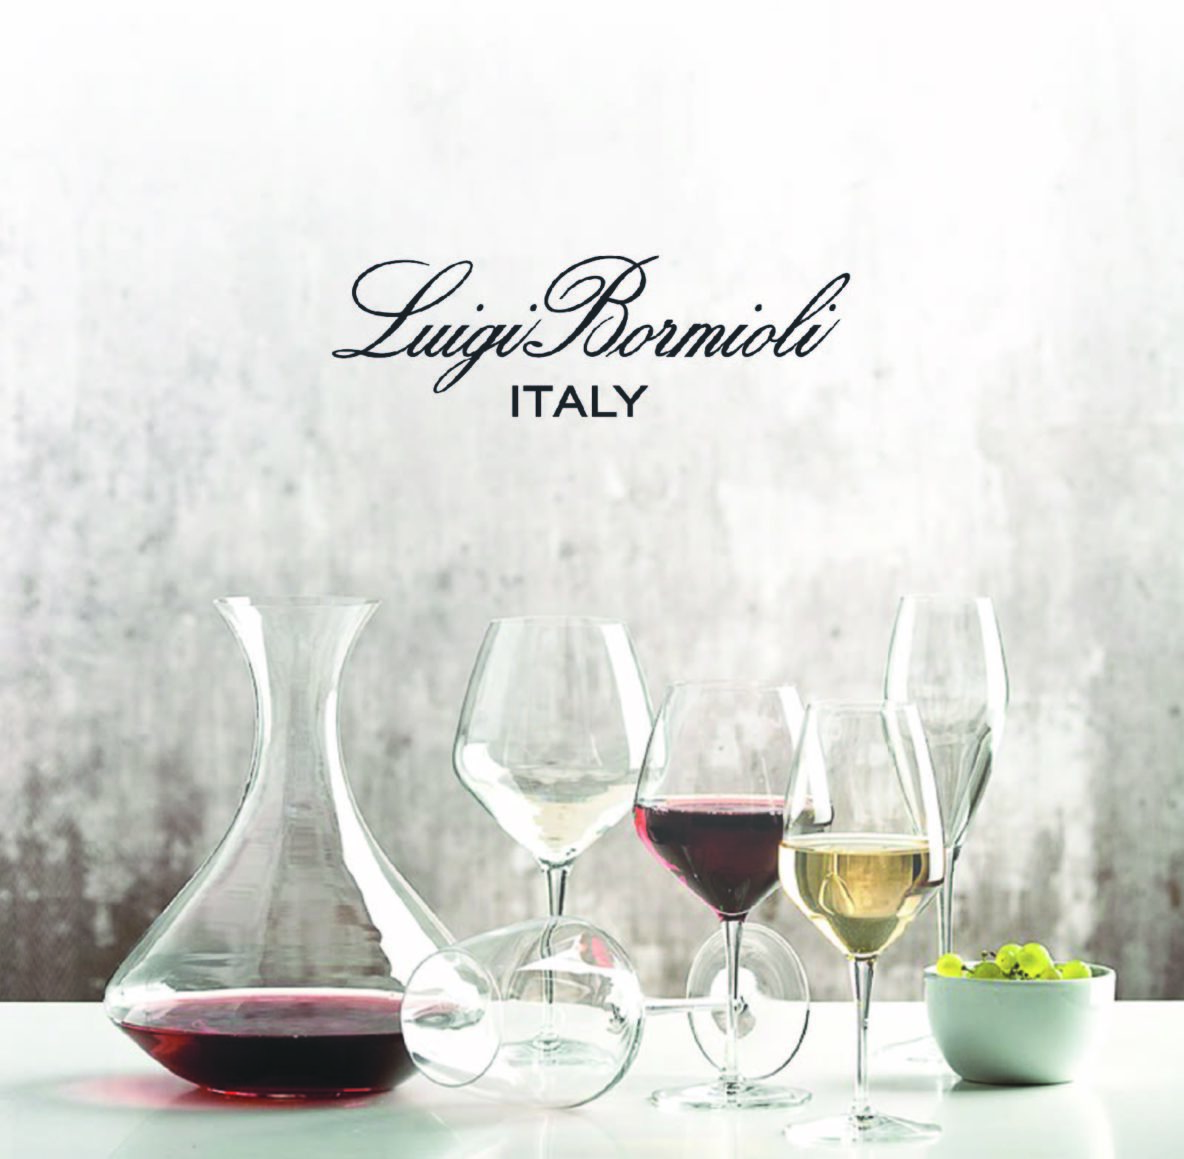 Luigi bormioli Glasses